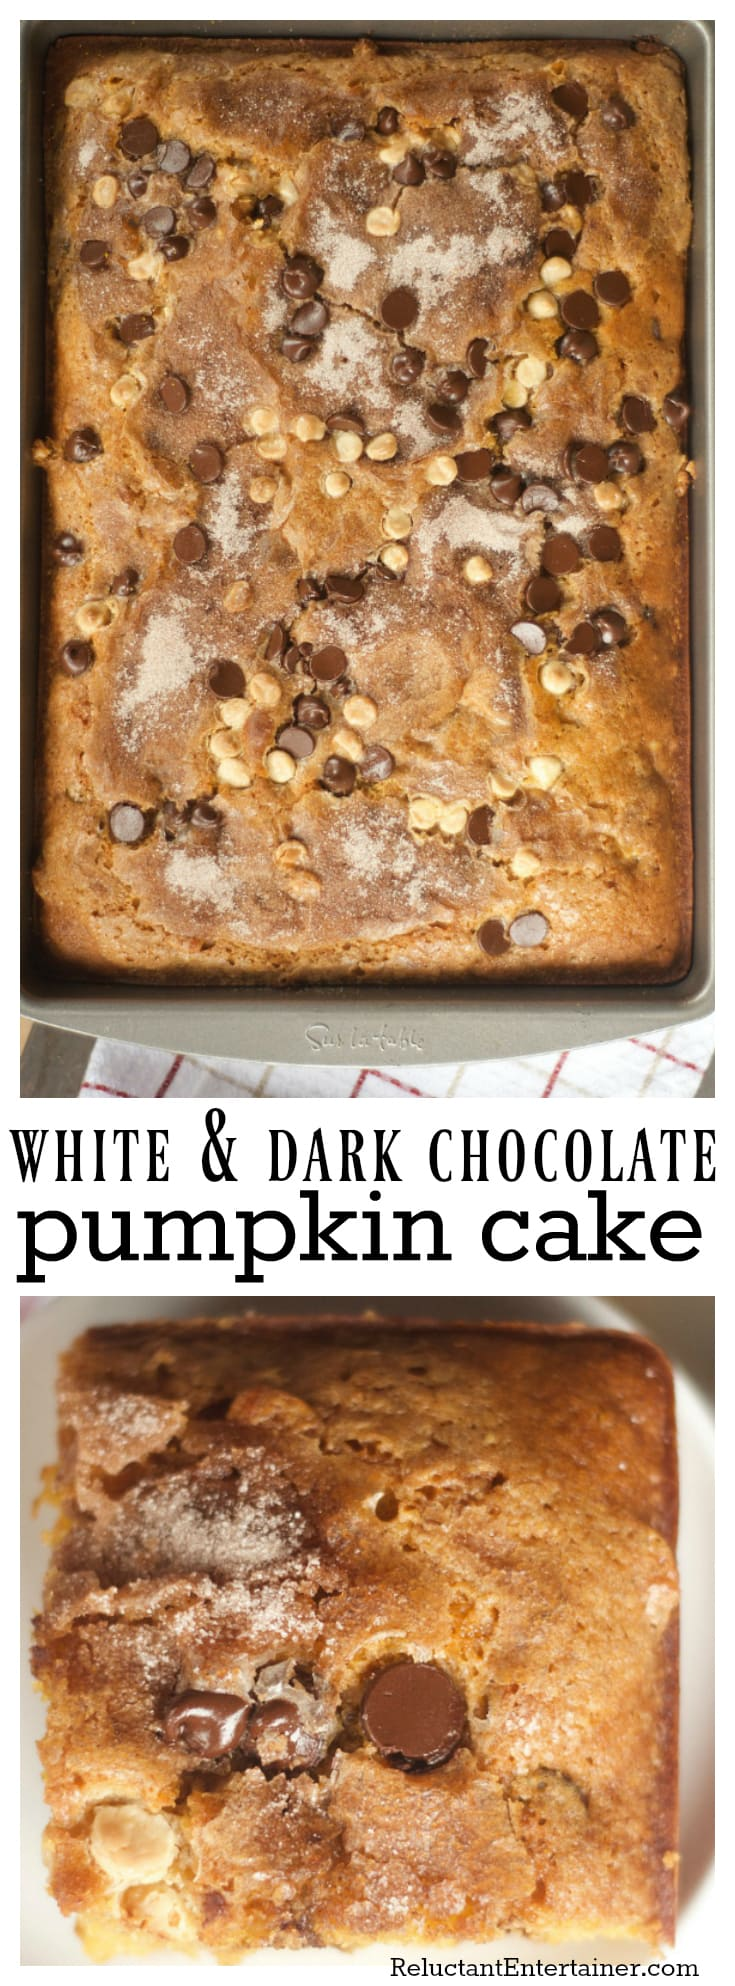 White and Dark Chocolate Pumpkin Cake